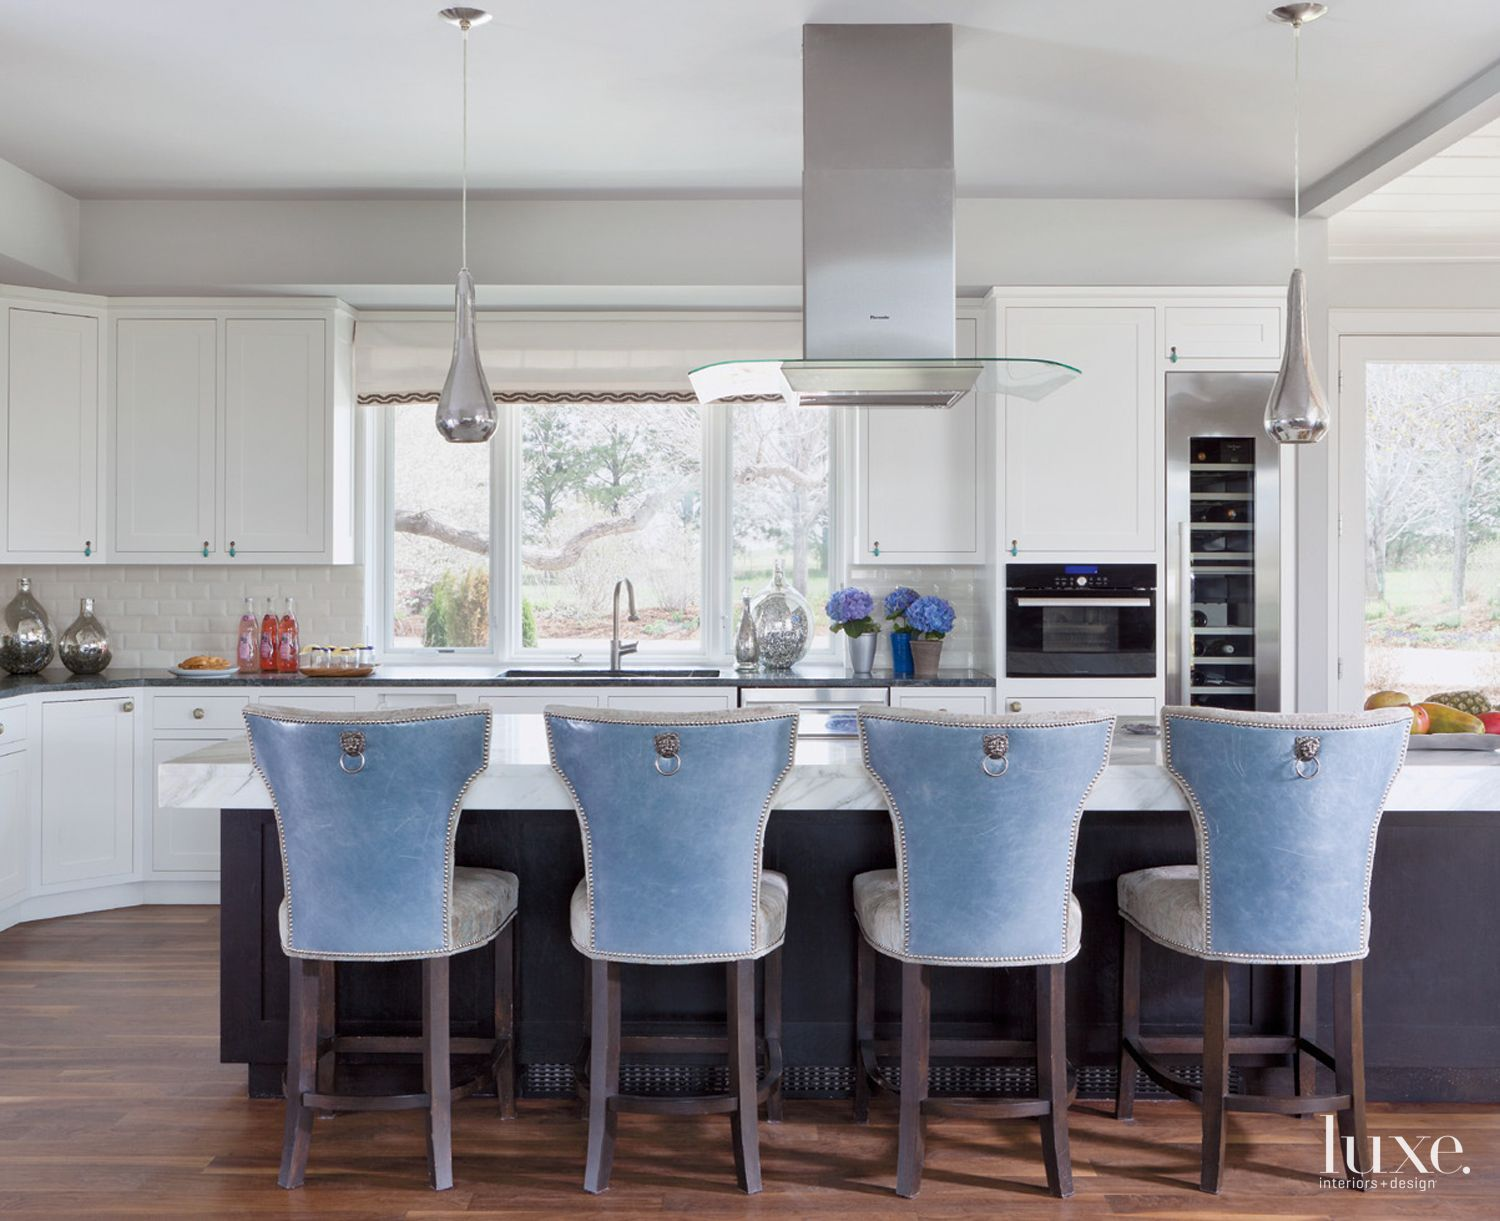 Eclectic White Kitchen with Mercury Glass Pendants